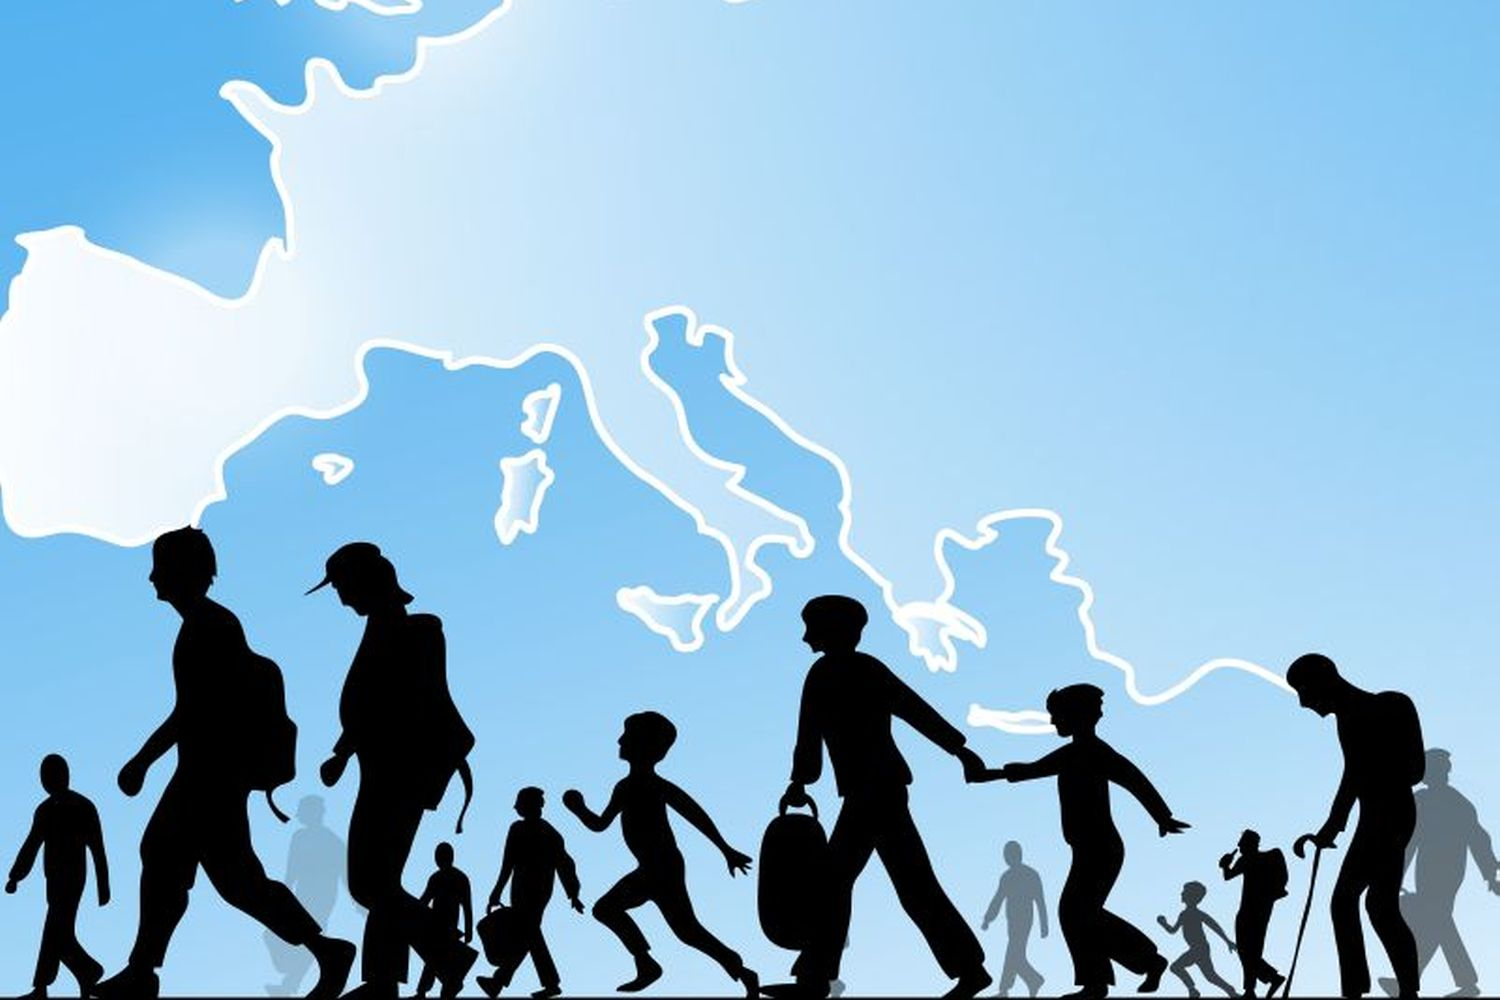 13015932-immigration-people-on-europe-map-background-01-e0a3256f65